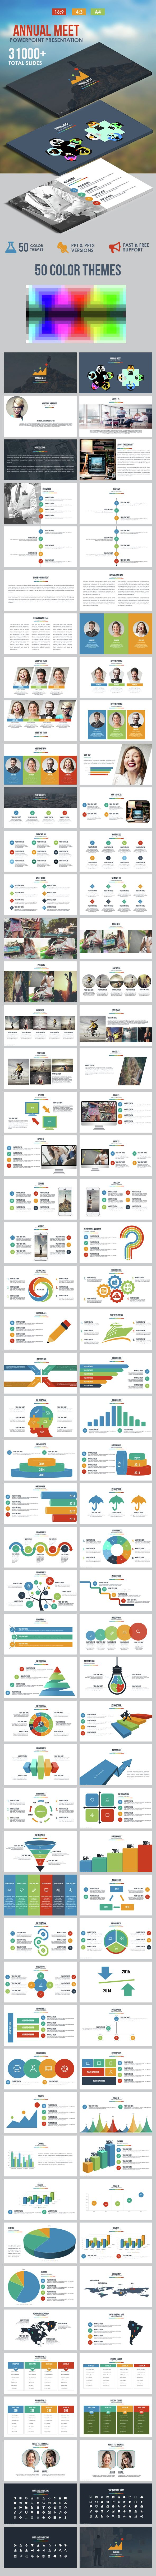 Annual Meet Powerpoint Template. Download here: http://graphicriver.net/item/annual-meet-powerpoint-template/15146249?ref=ksioks